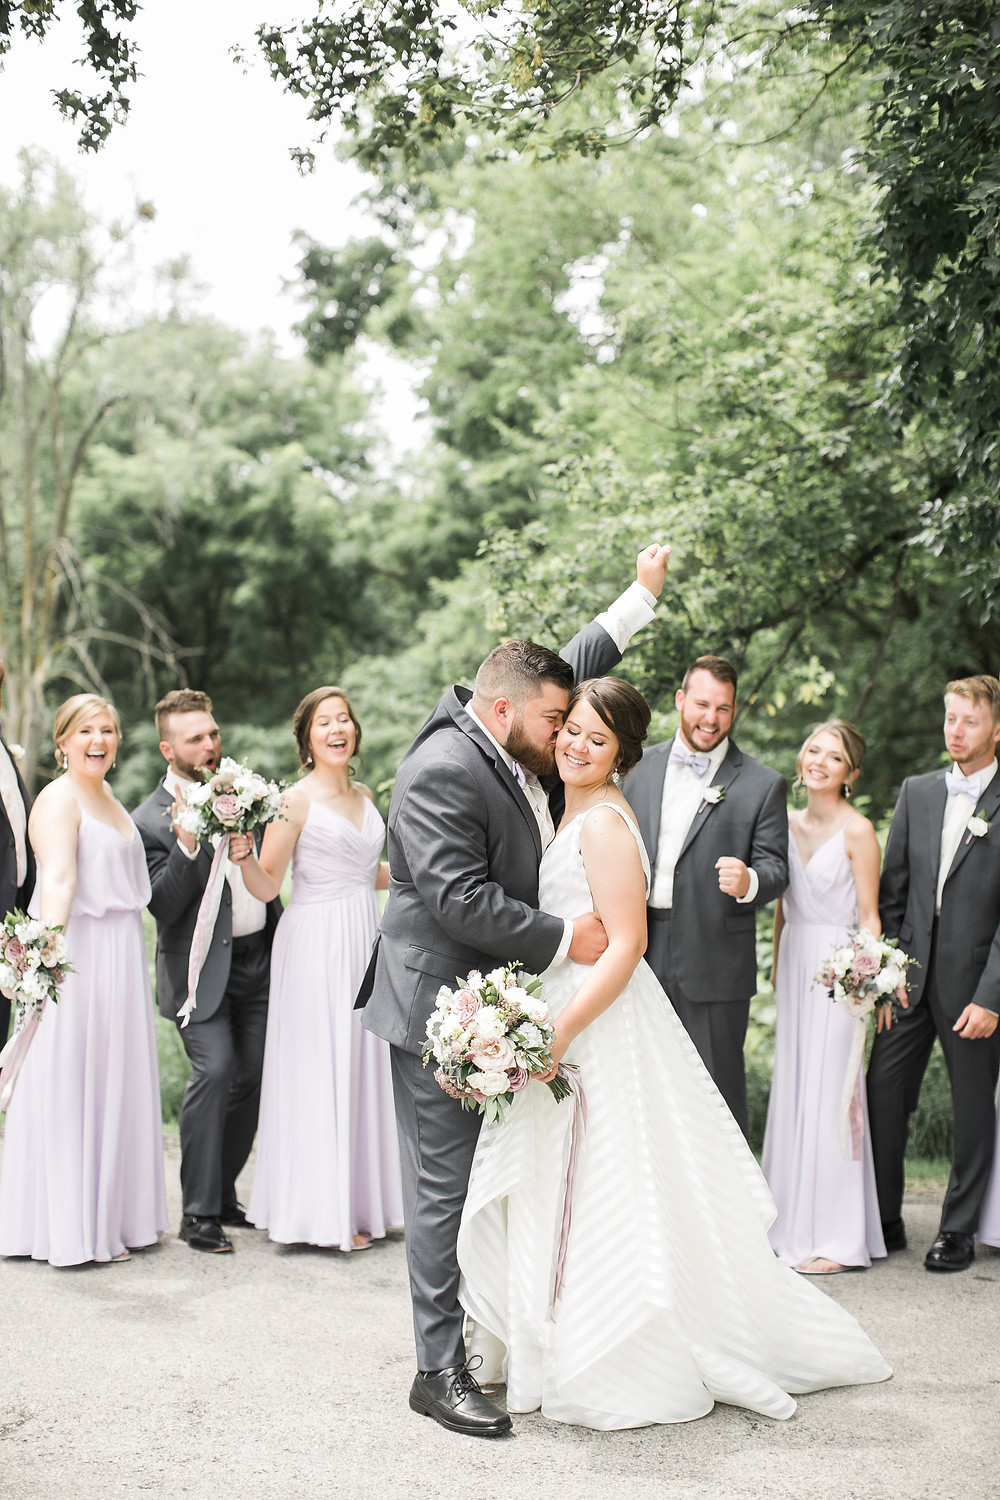 bride in striped wedding dress holding a bridal bouquet and groom cuddling with bridal party looking on and cheering